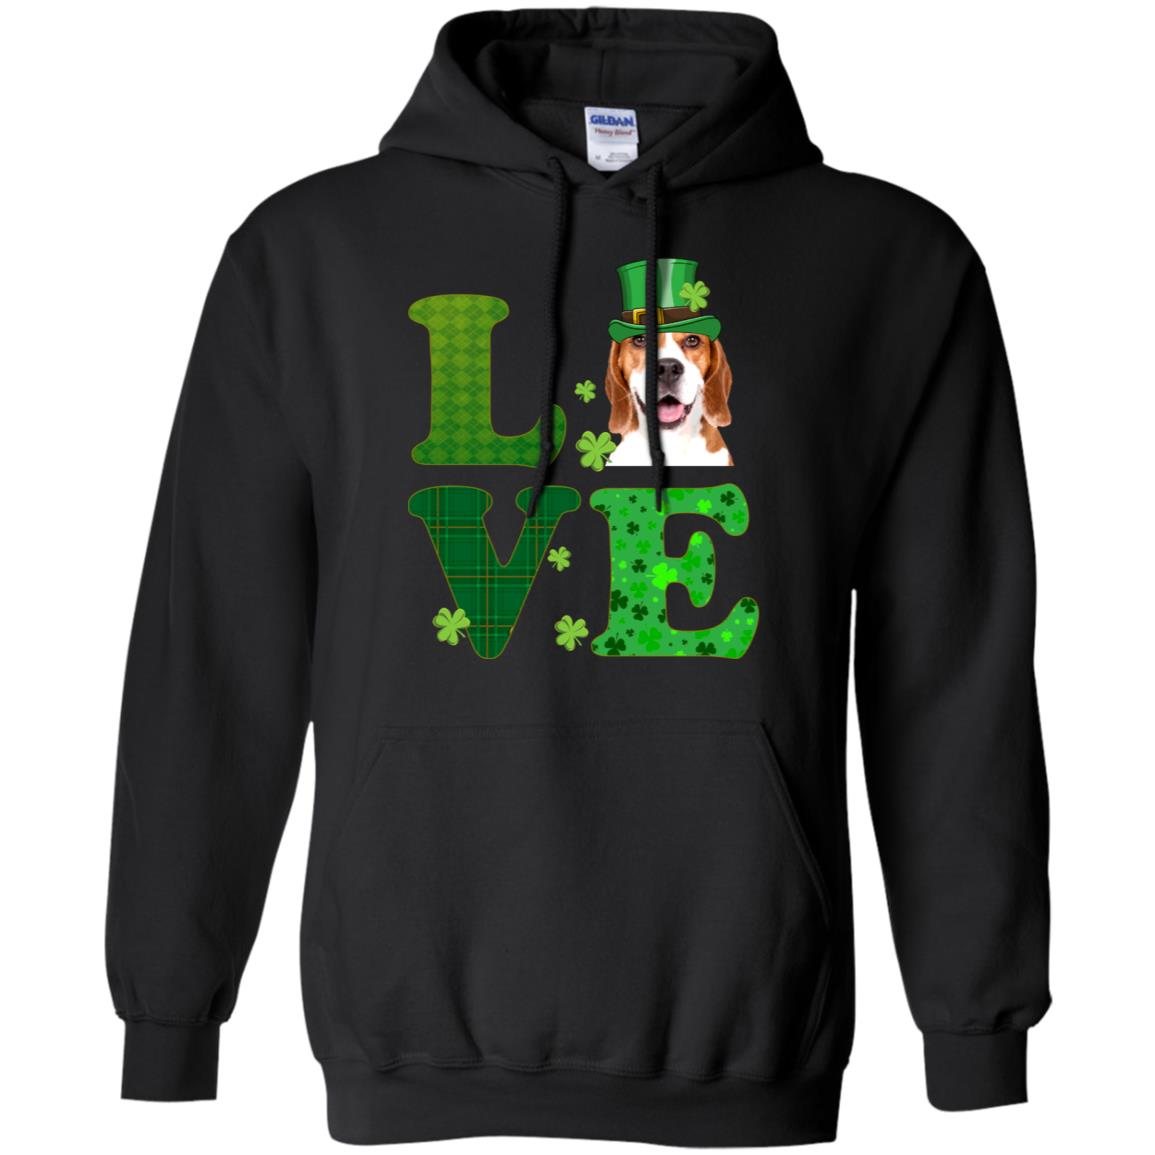 e626a3c8 Awesome love beagle st. patrick's day t shirt funny dog lover gift ...